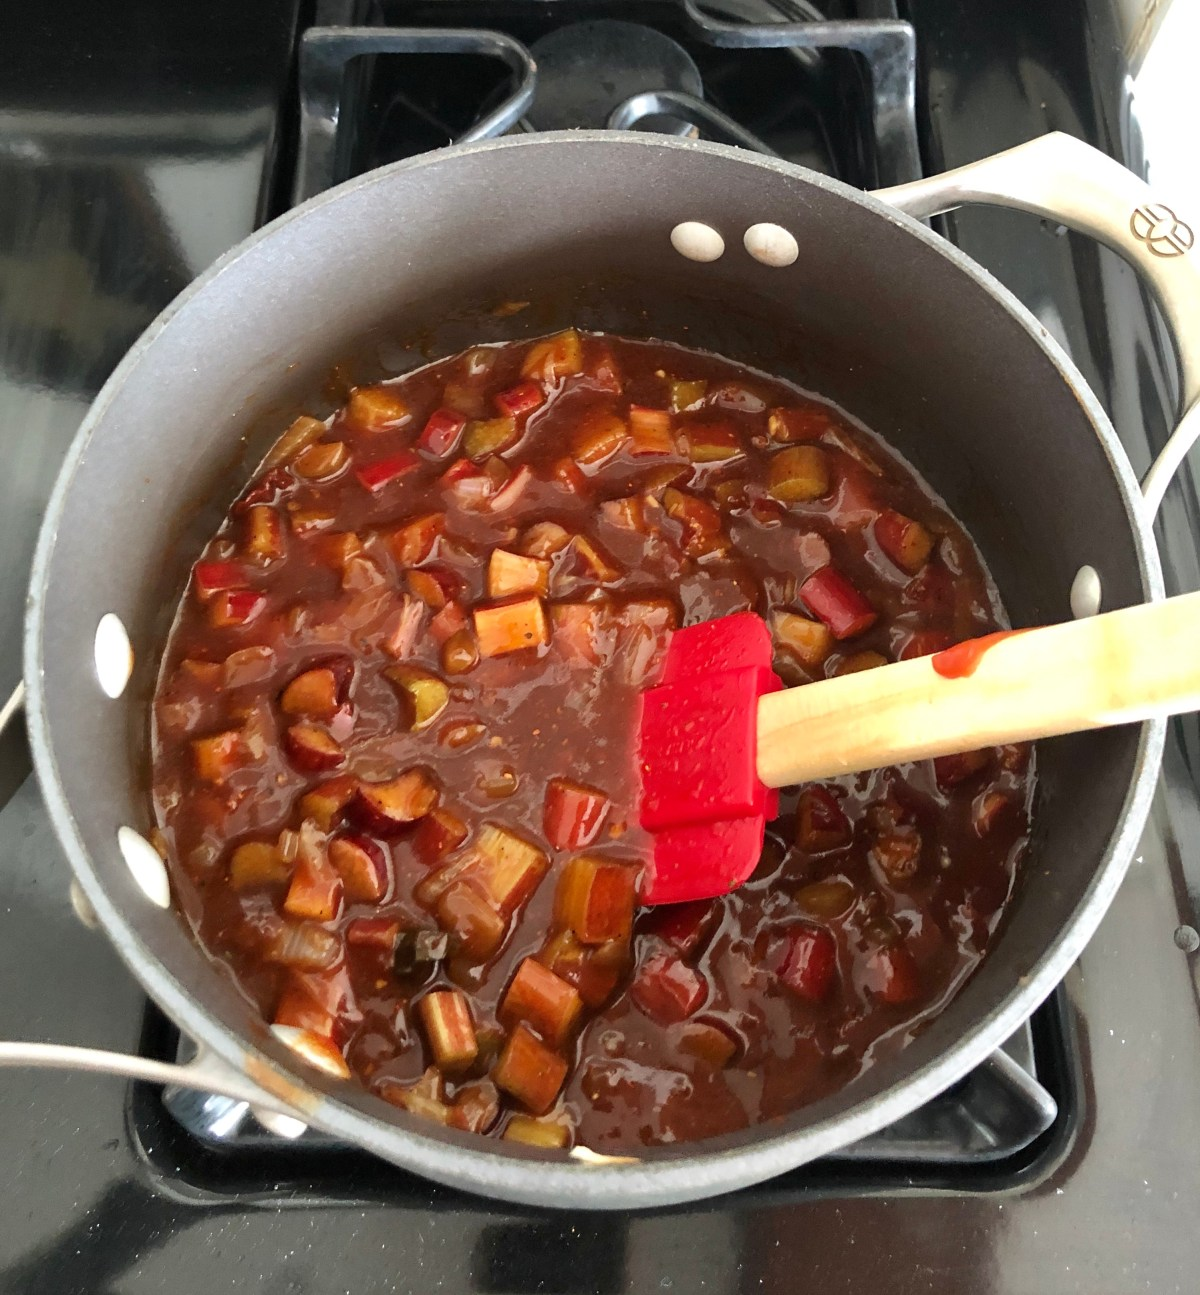 Sliced rhubarb, ketchup, water, apricot preserves, apple cider vinegar, molasses, Dijon mustard, chipotle pepper, 1 teaspoon barbecue seasoning, 1/4 teaspoon salt and 1/4 teaspoon pepper are added to the sauce pan.